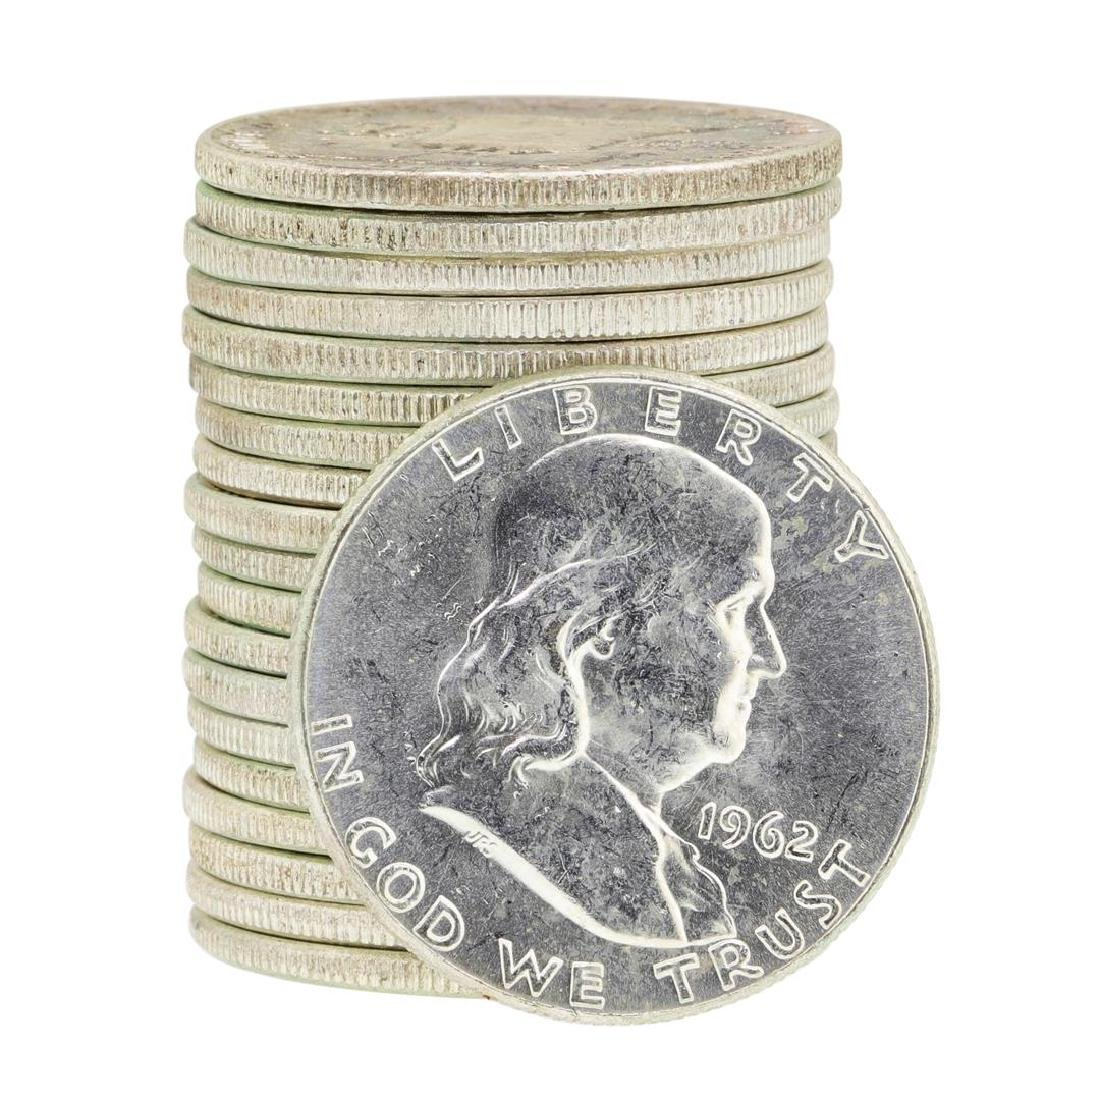 Tube of 20 1963 Franklin US Half Dollars